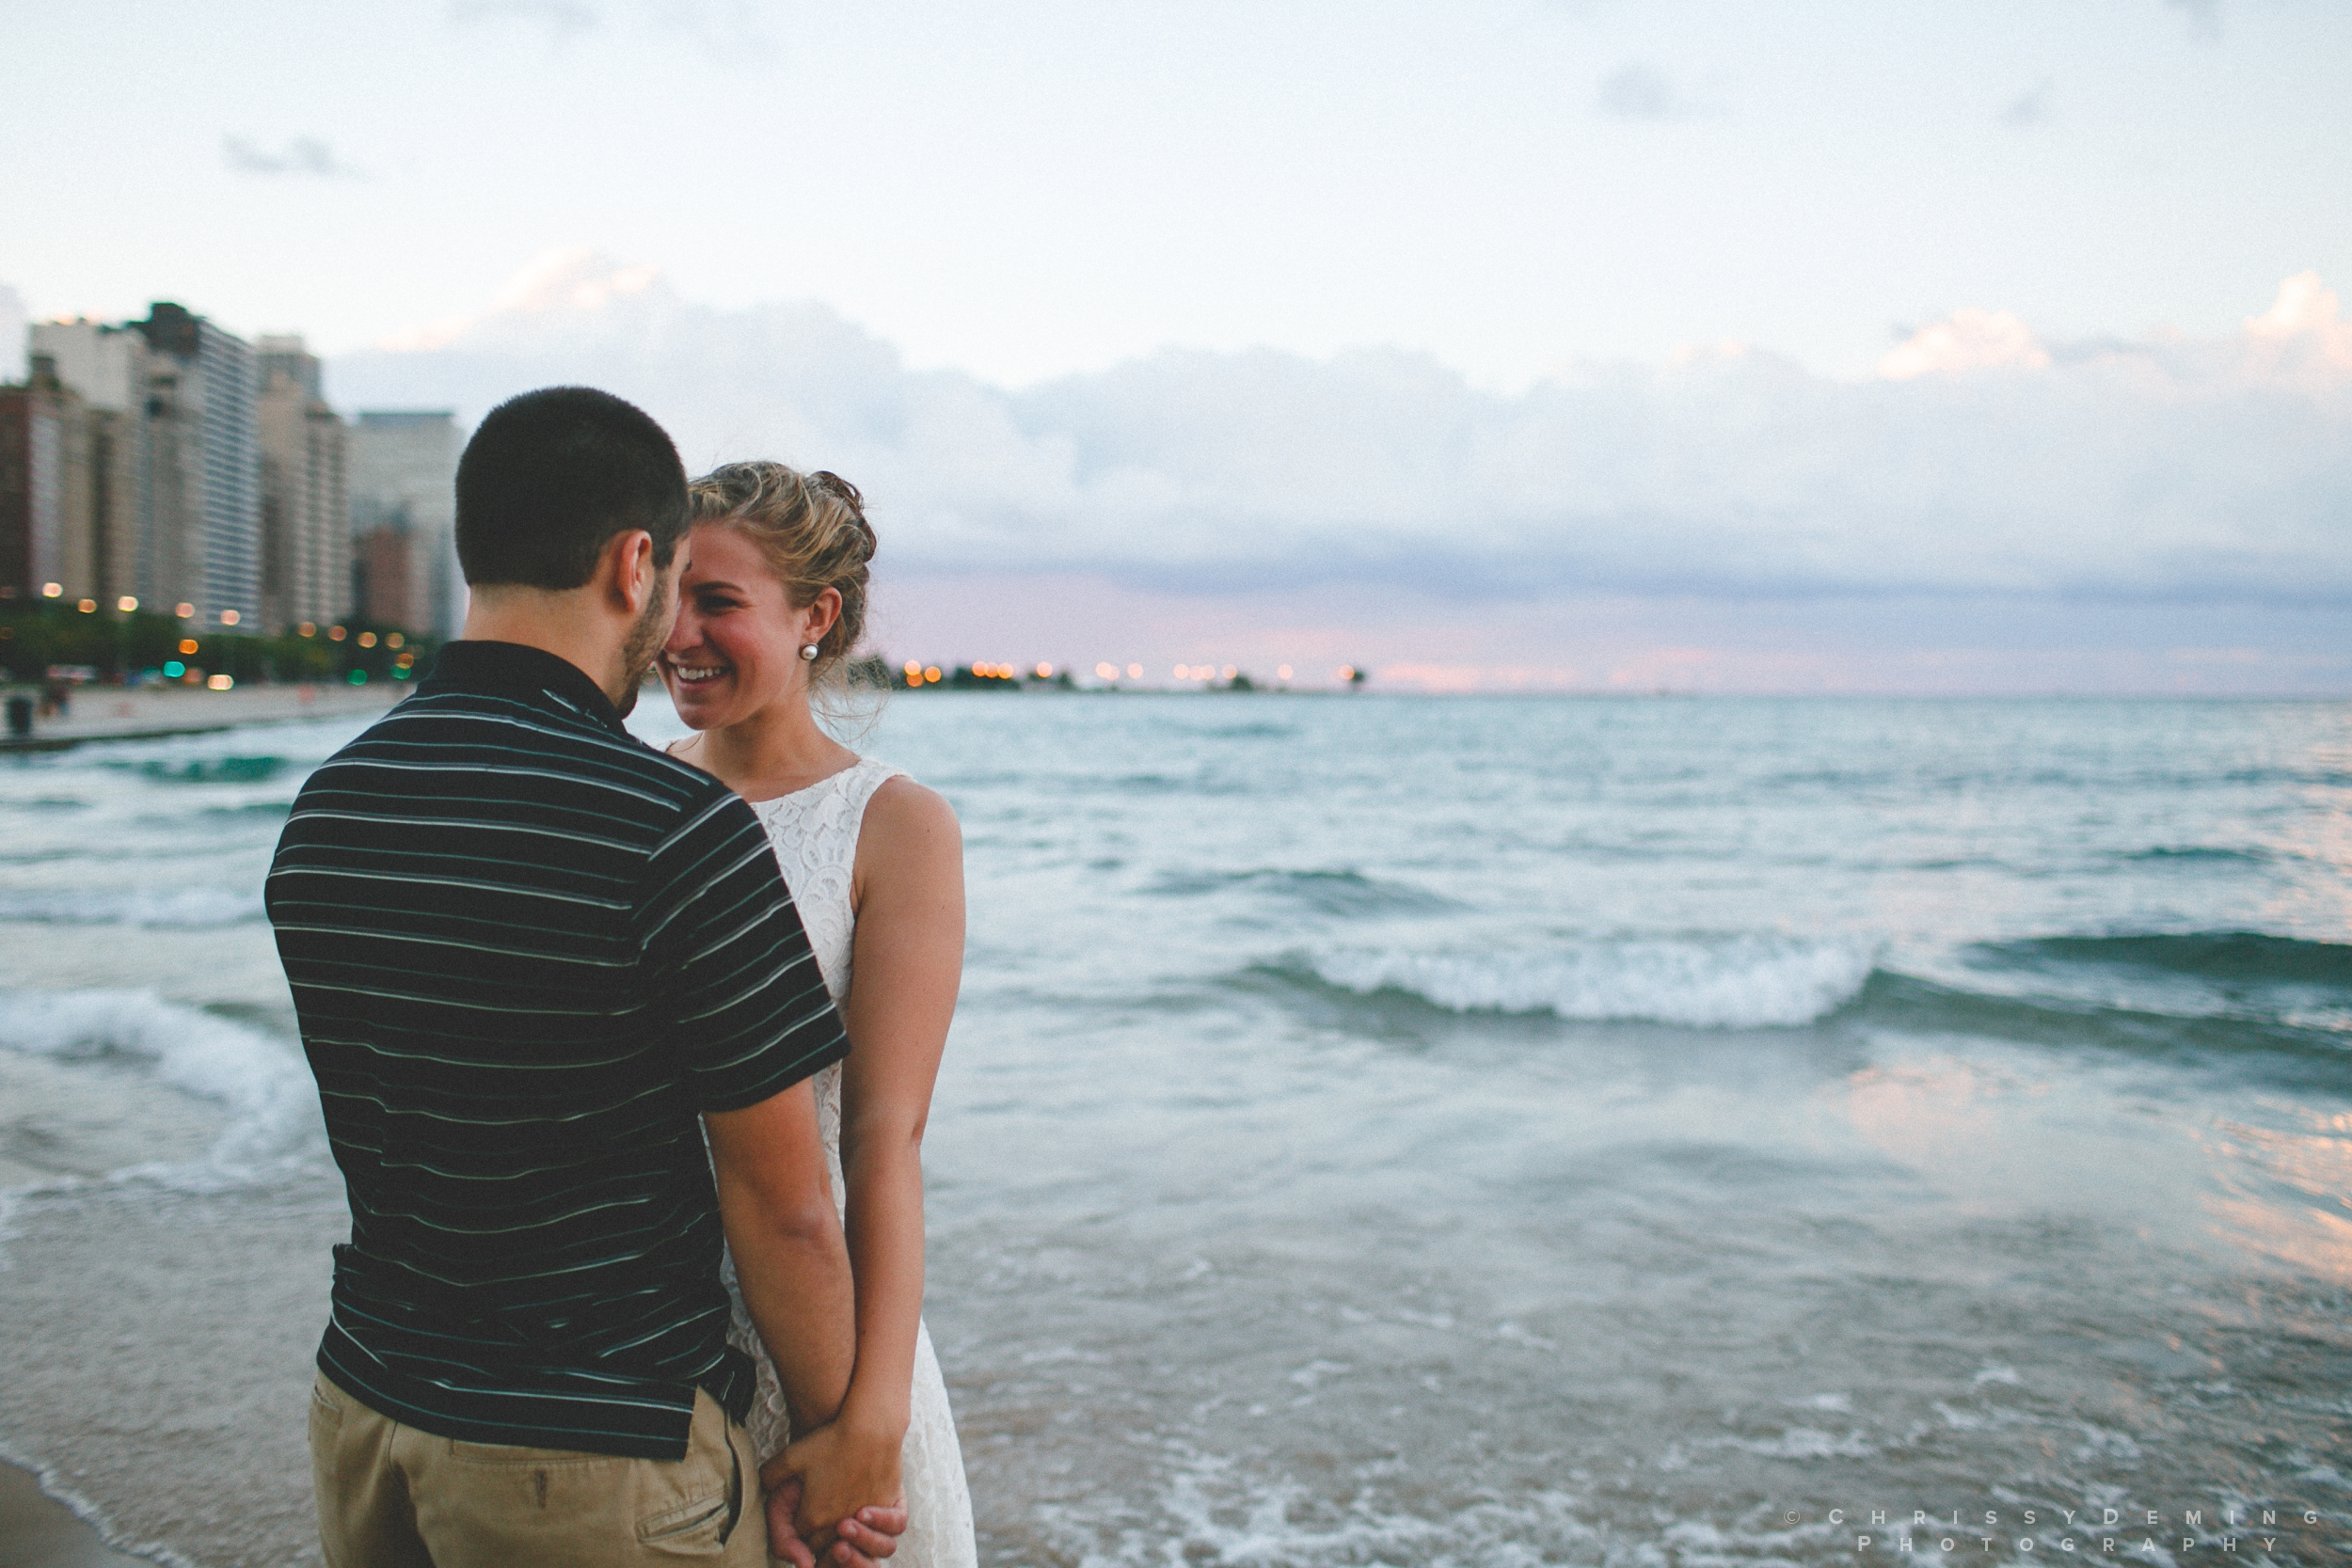 chicago_oakstreetbeach_lincolnpark_engagement_photography_0030.jpg